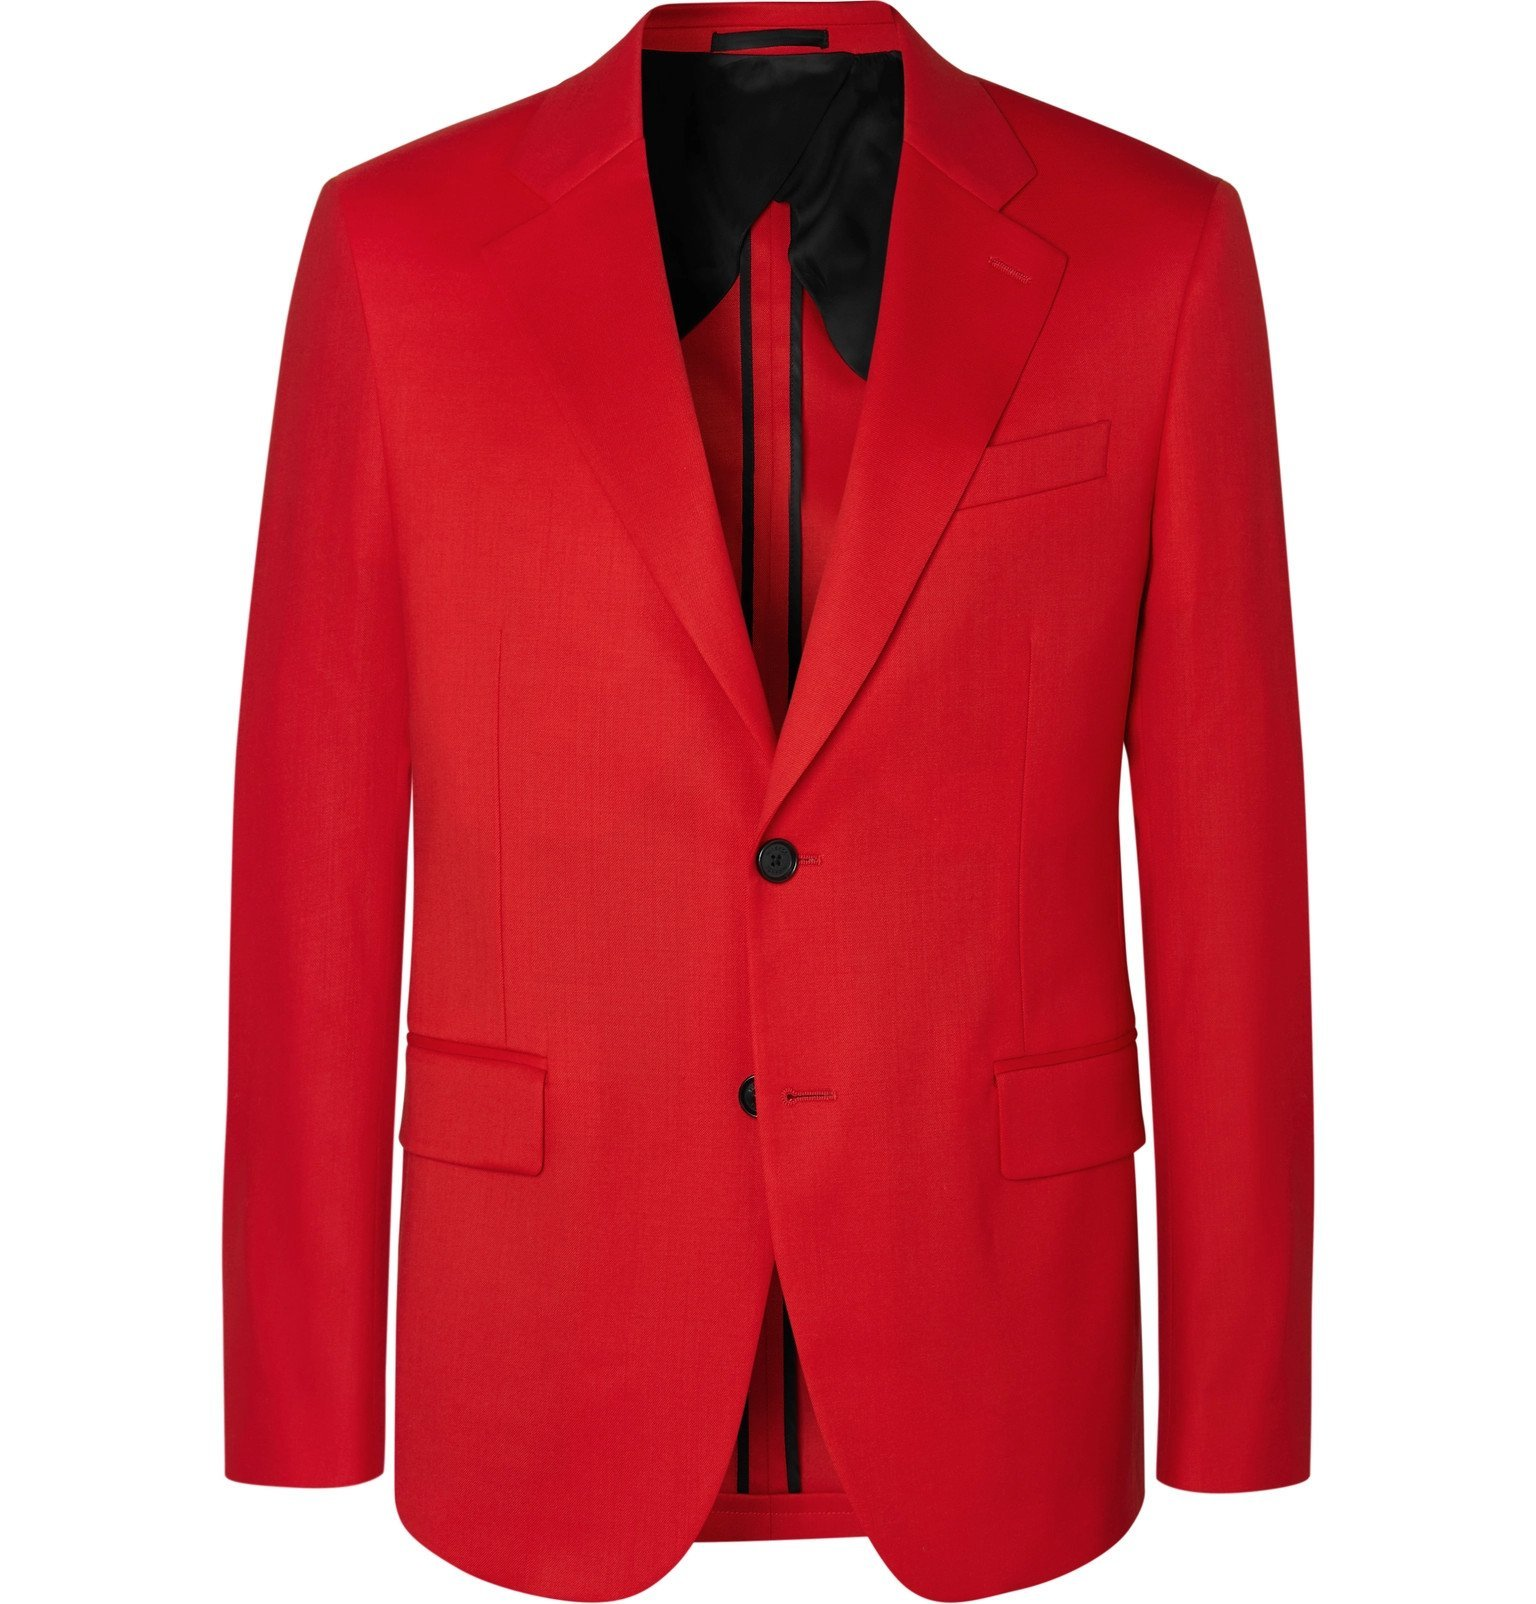 Versace - Red Slim-Fit Stretch-Wool Twill Suit Jacket - Red